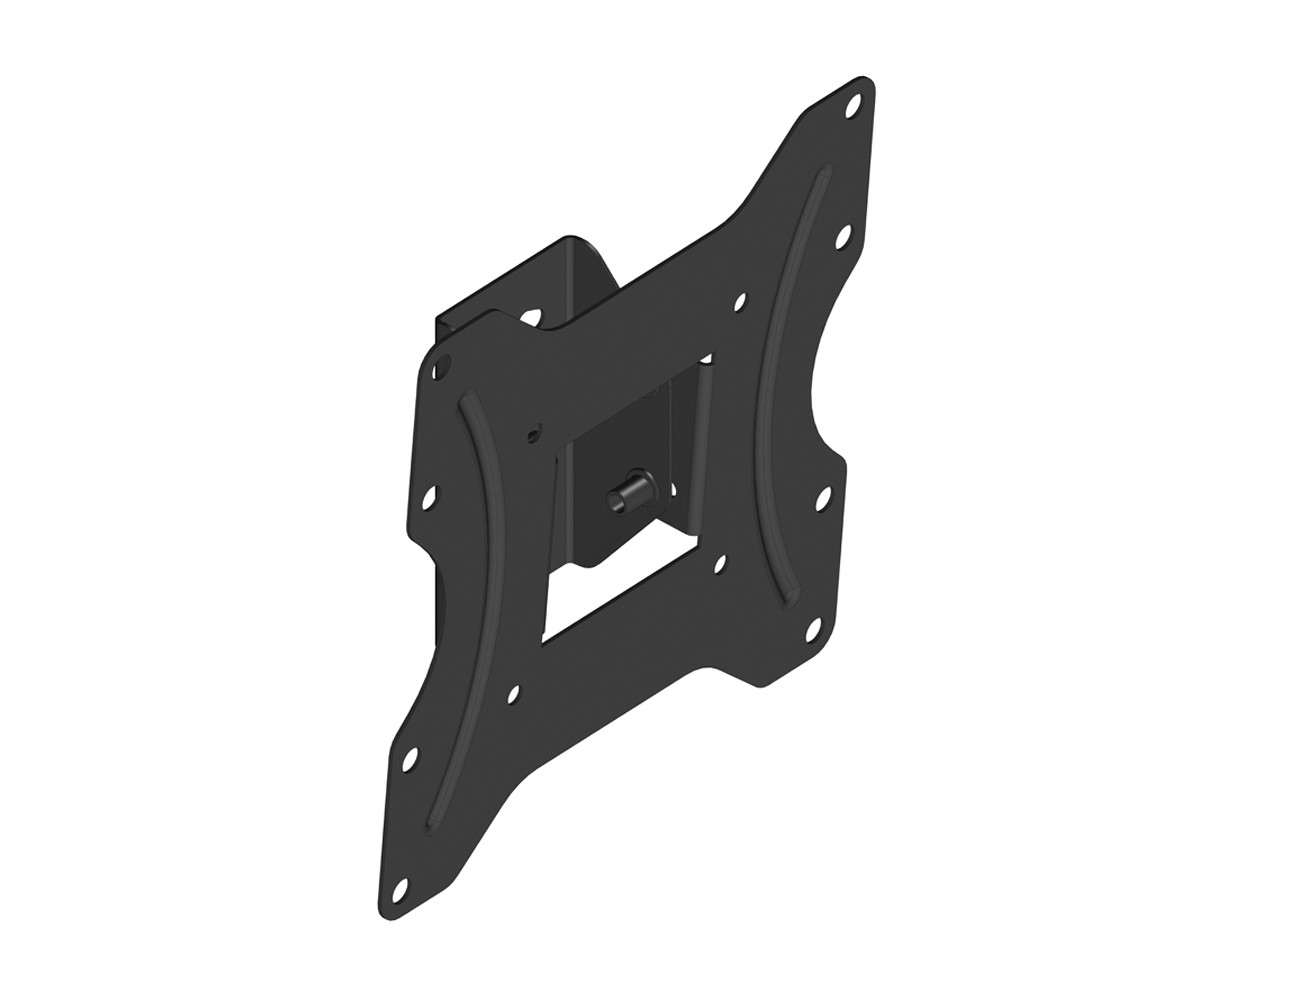 Tilted Wall Mount SIMPLER 27EN